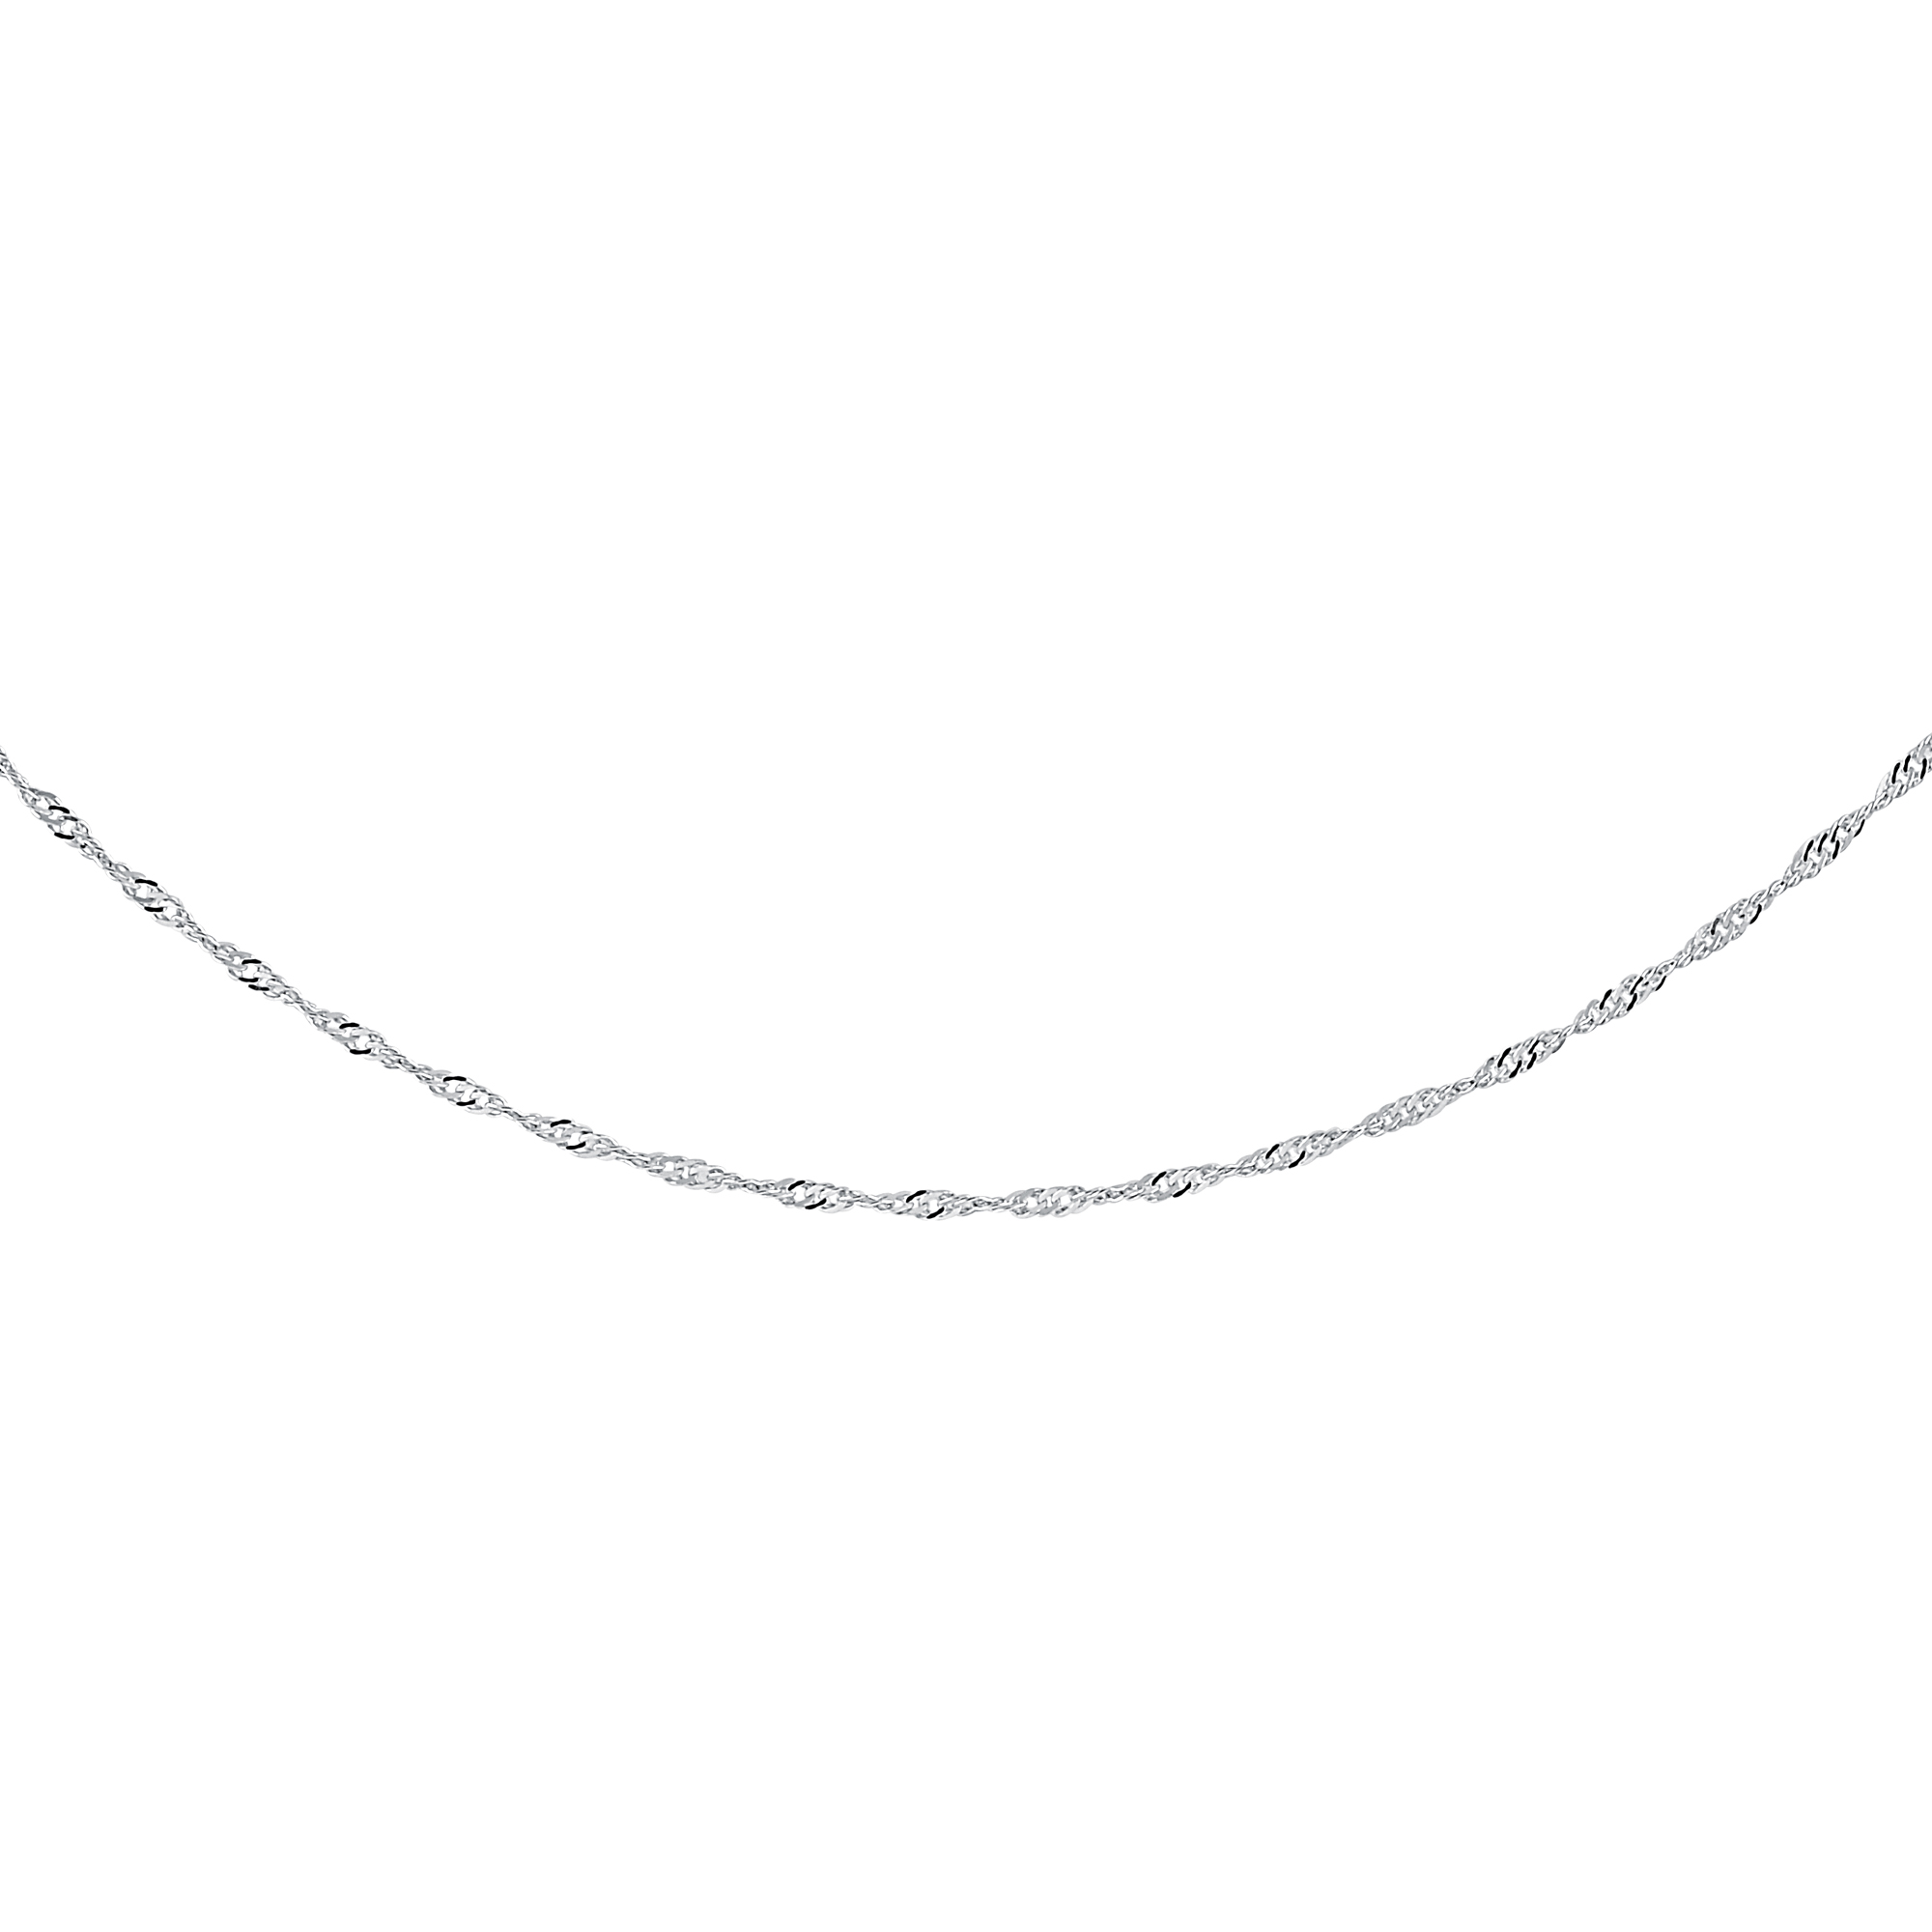 18'' Singapore Chain for women - 10K white Gold